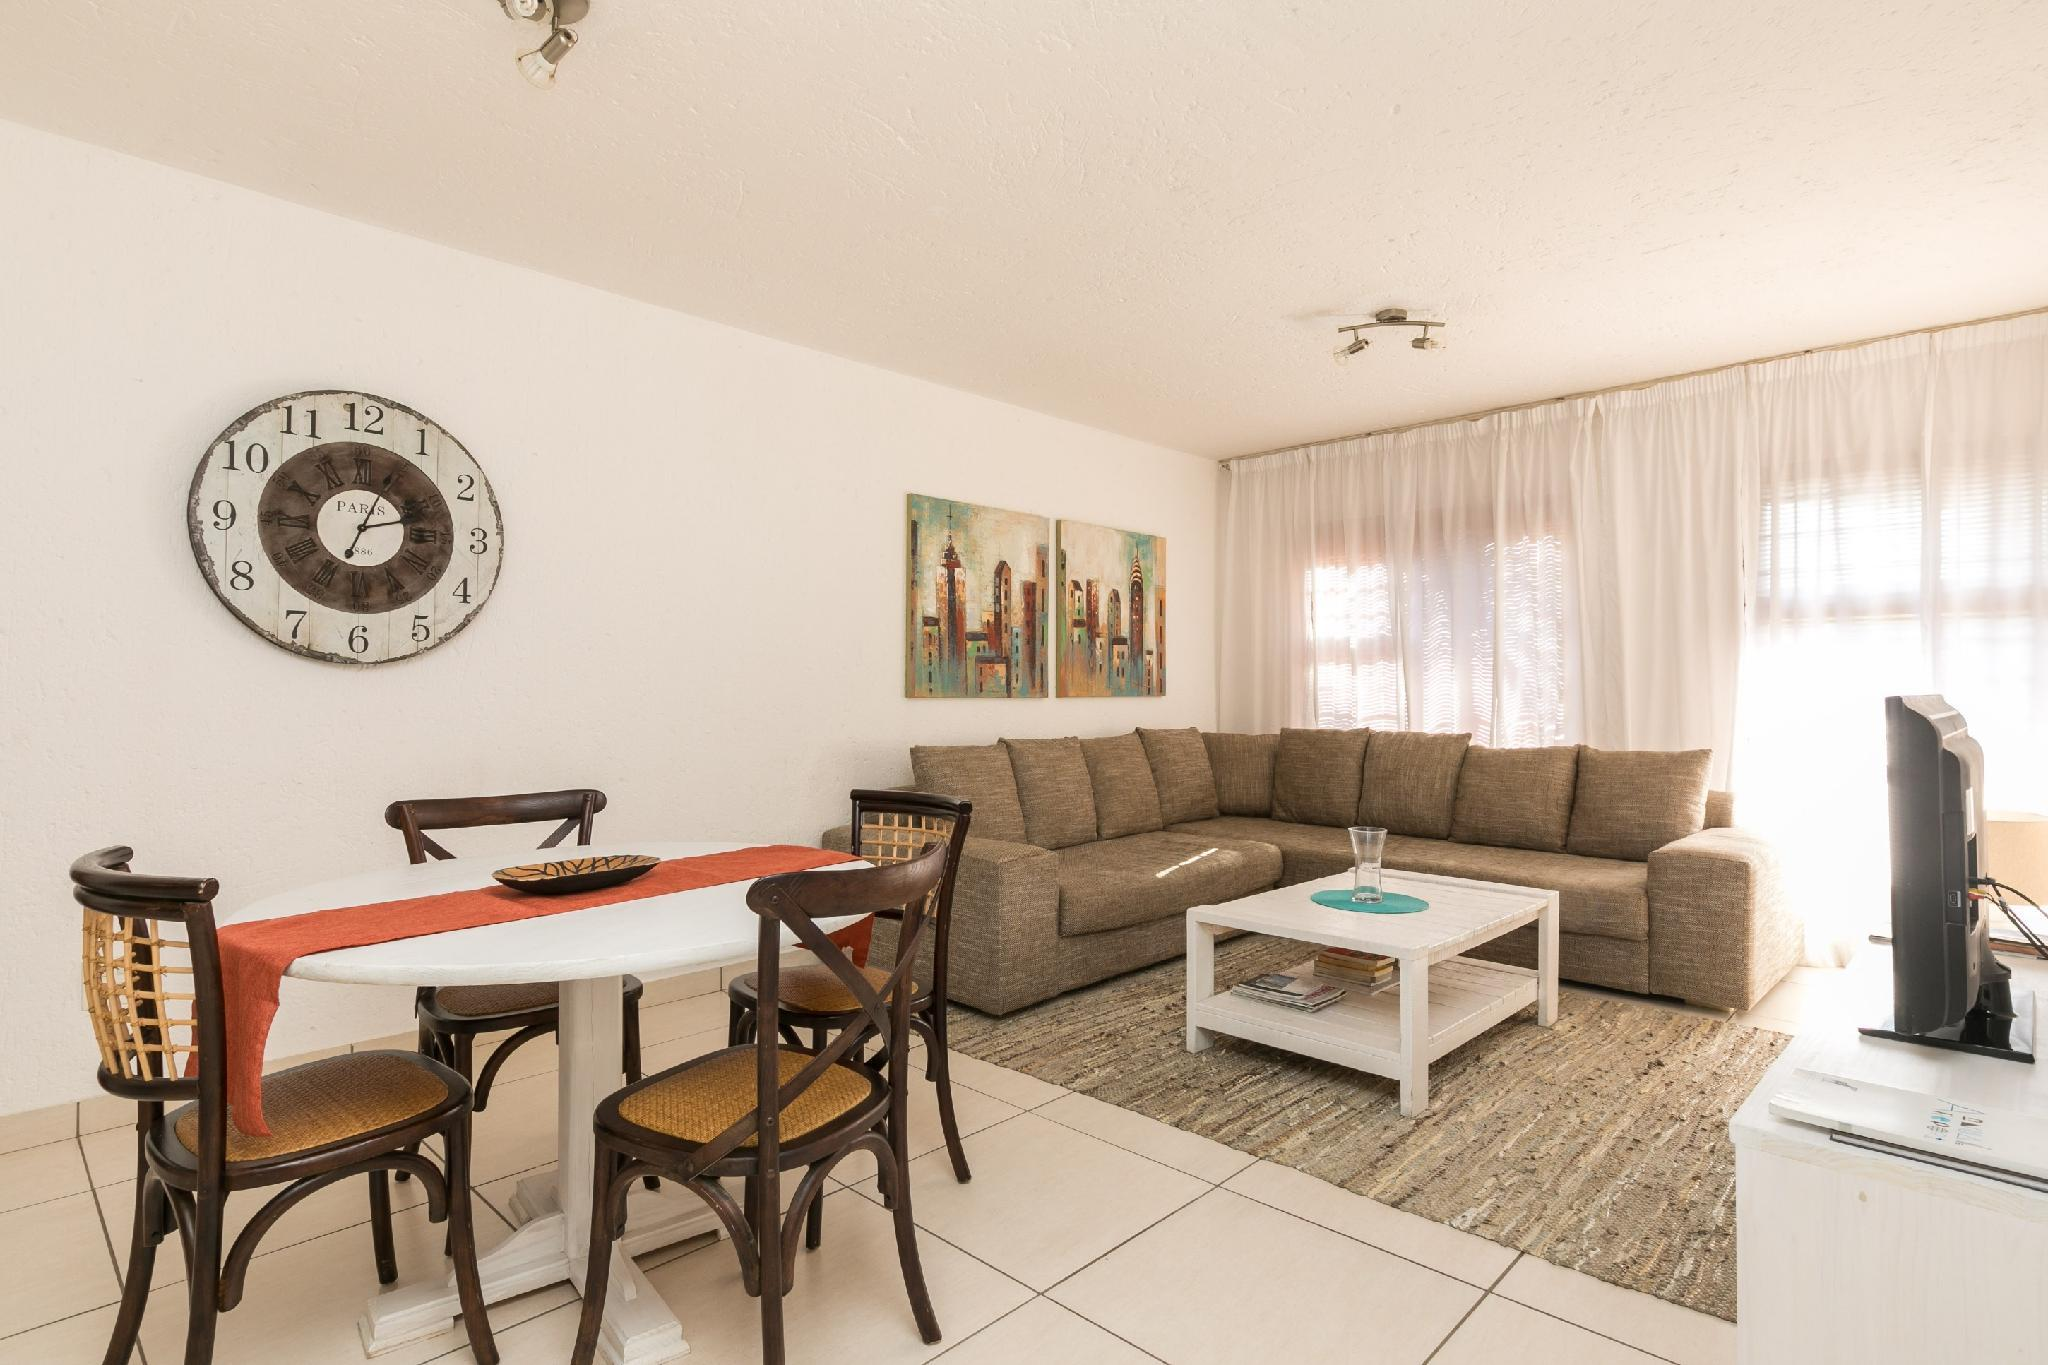 Homely 3 Bedroom Apartment For Sandton Stay